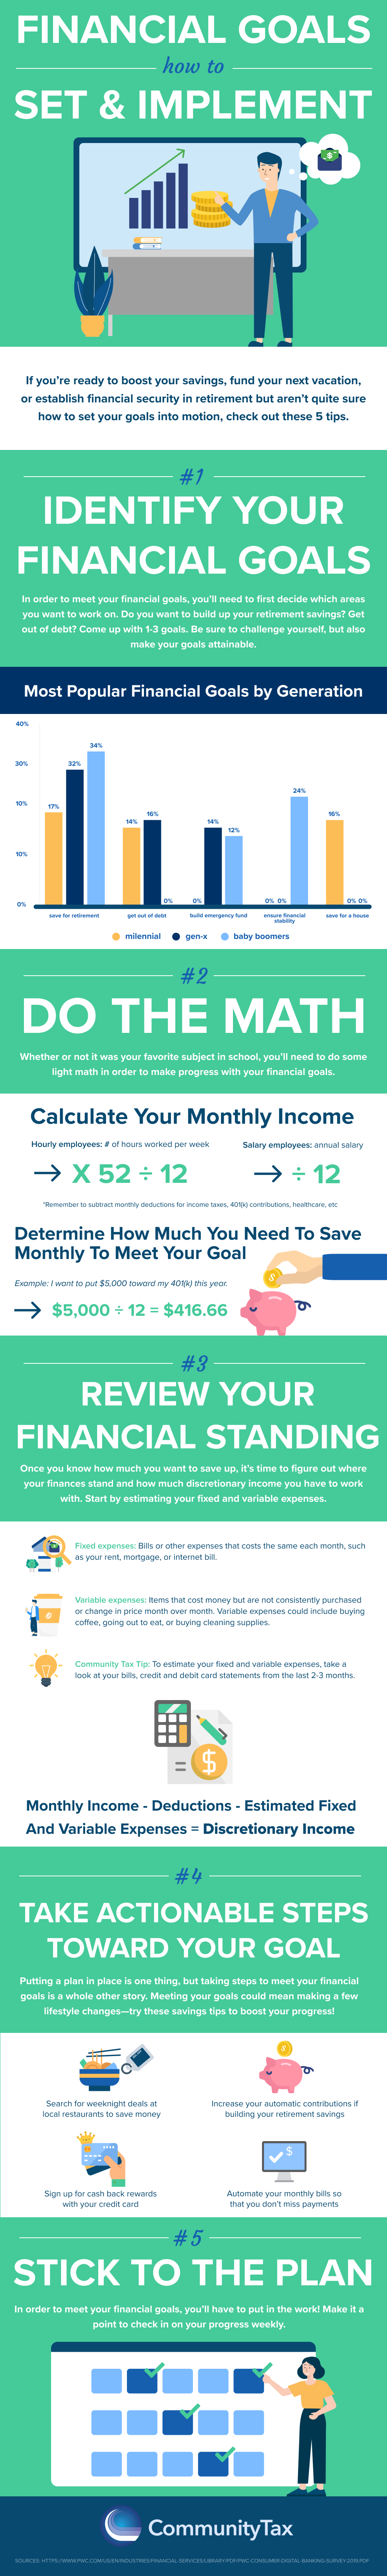 setting financial goals infographic